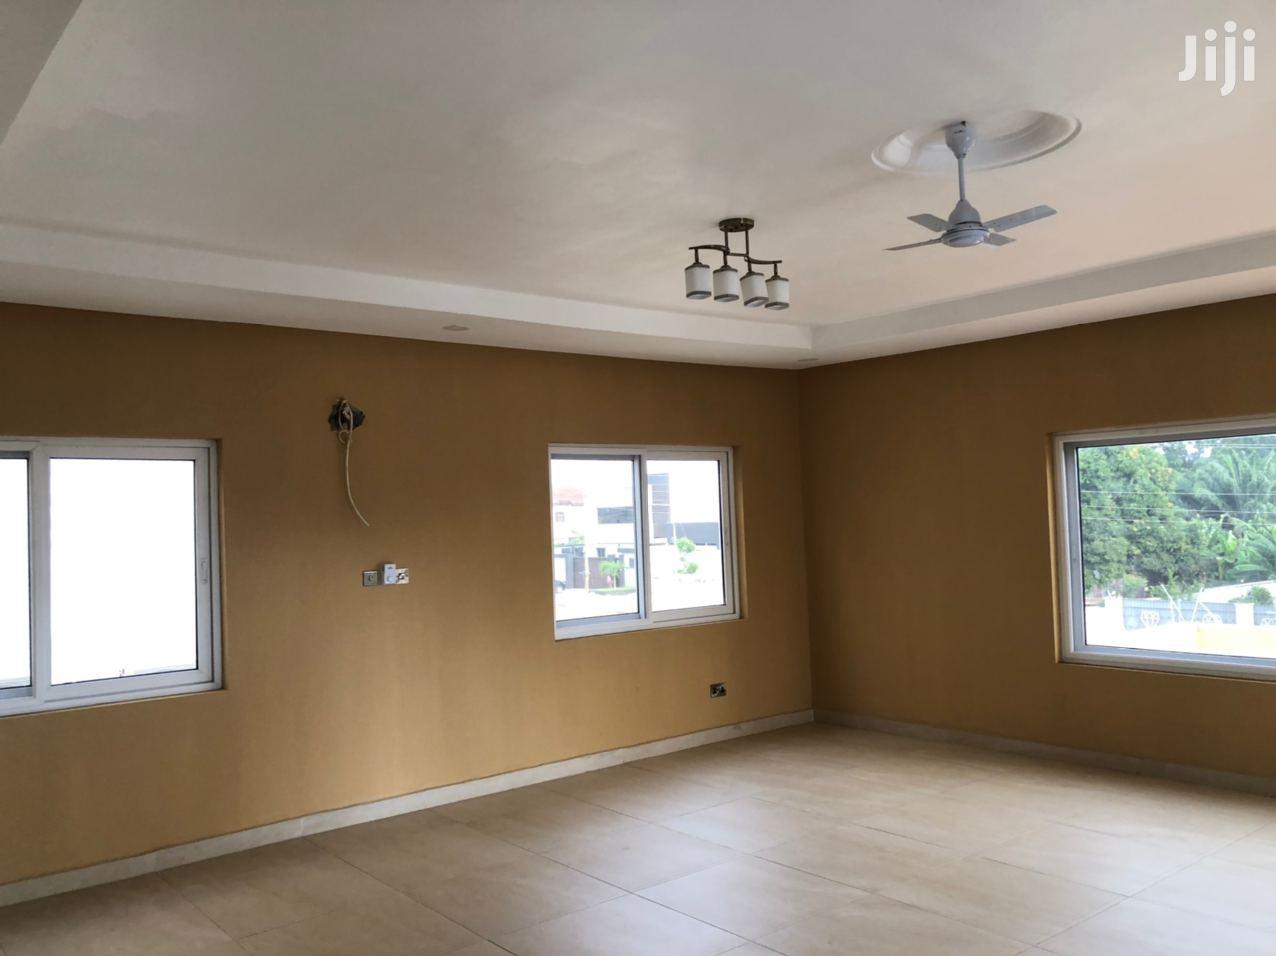 5 Bedroom East Airport For Sale | Houses & Apartments For Sale for sale in Airport Residential Area, Greater Accra, Ghana